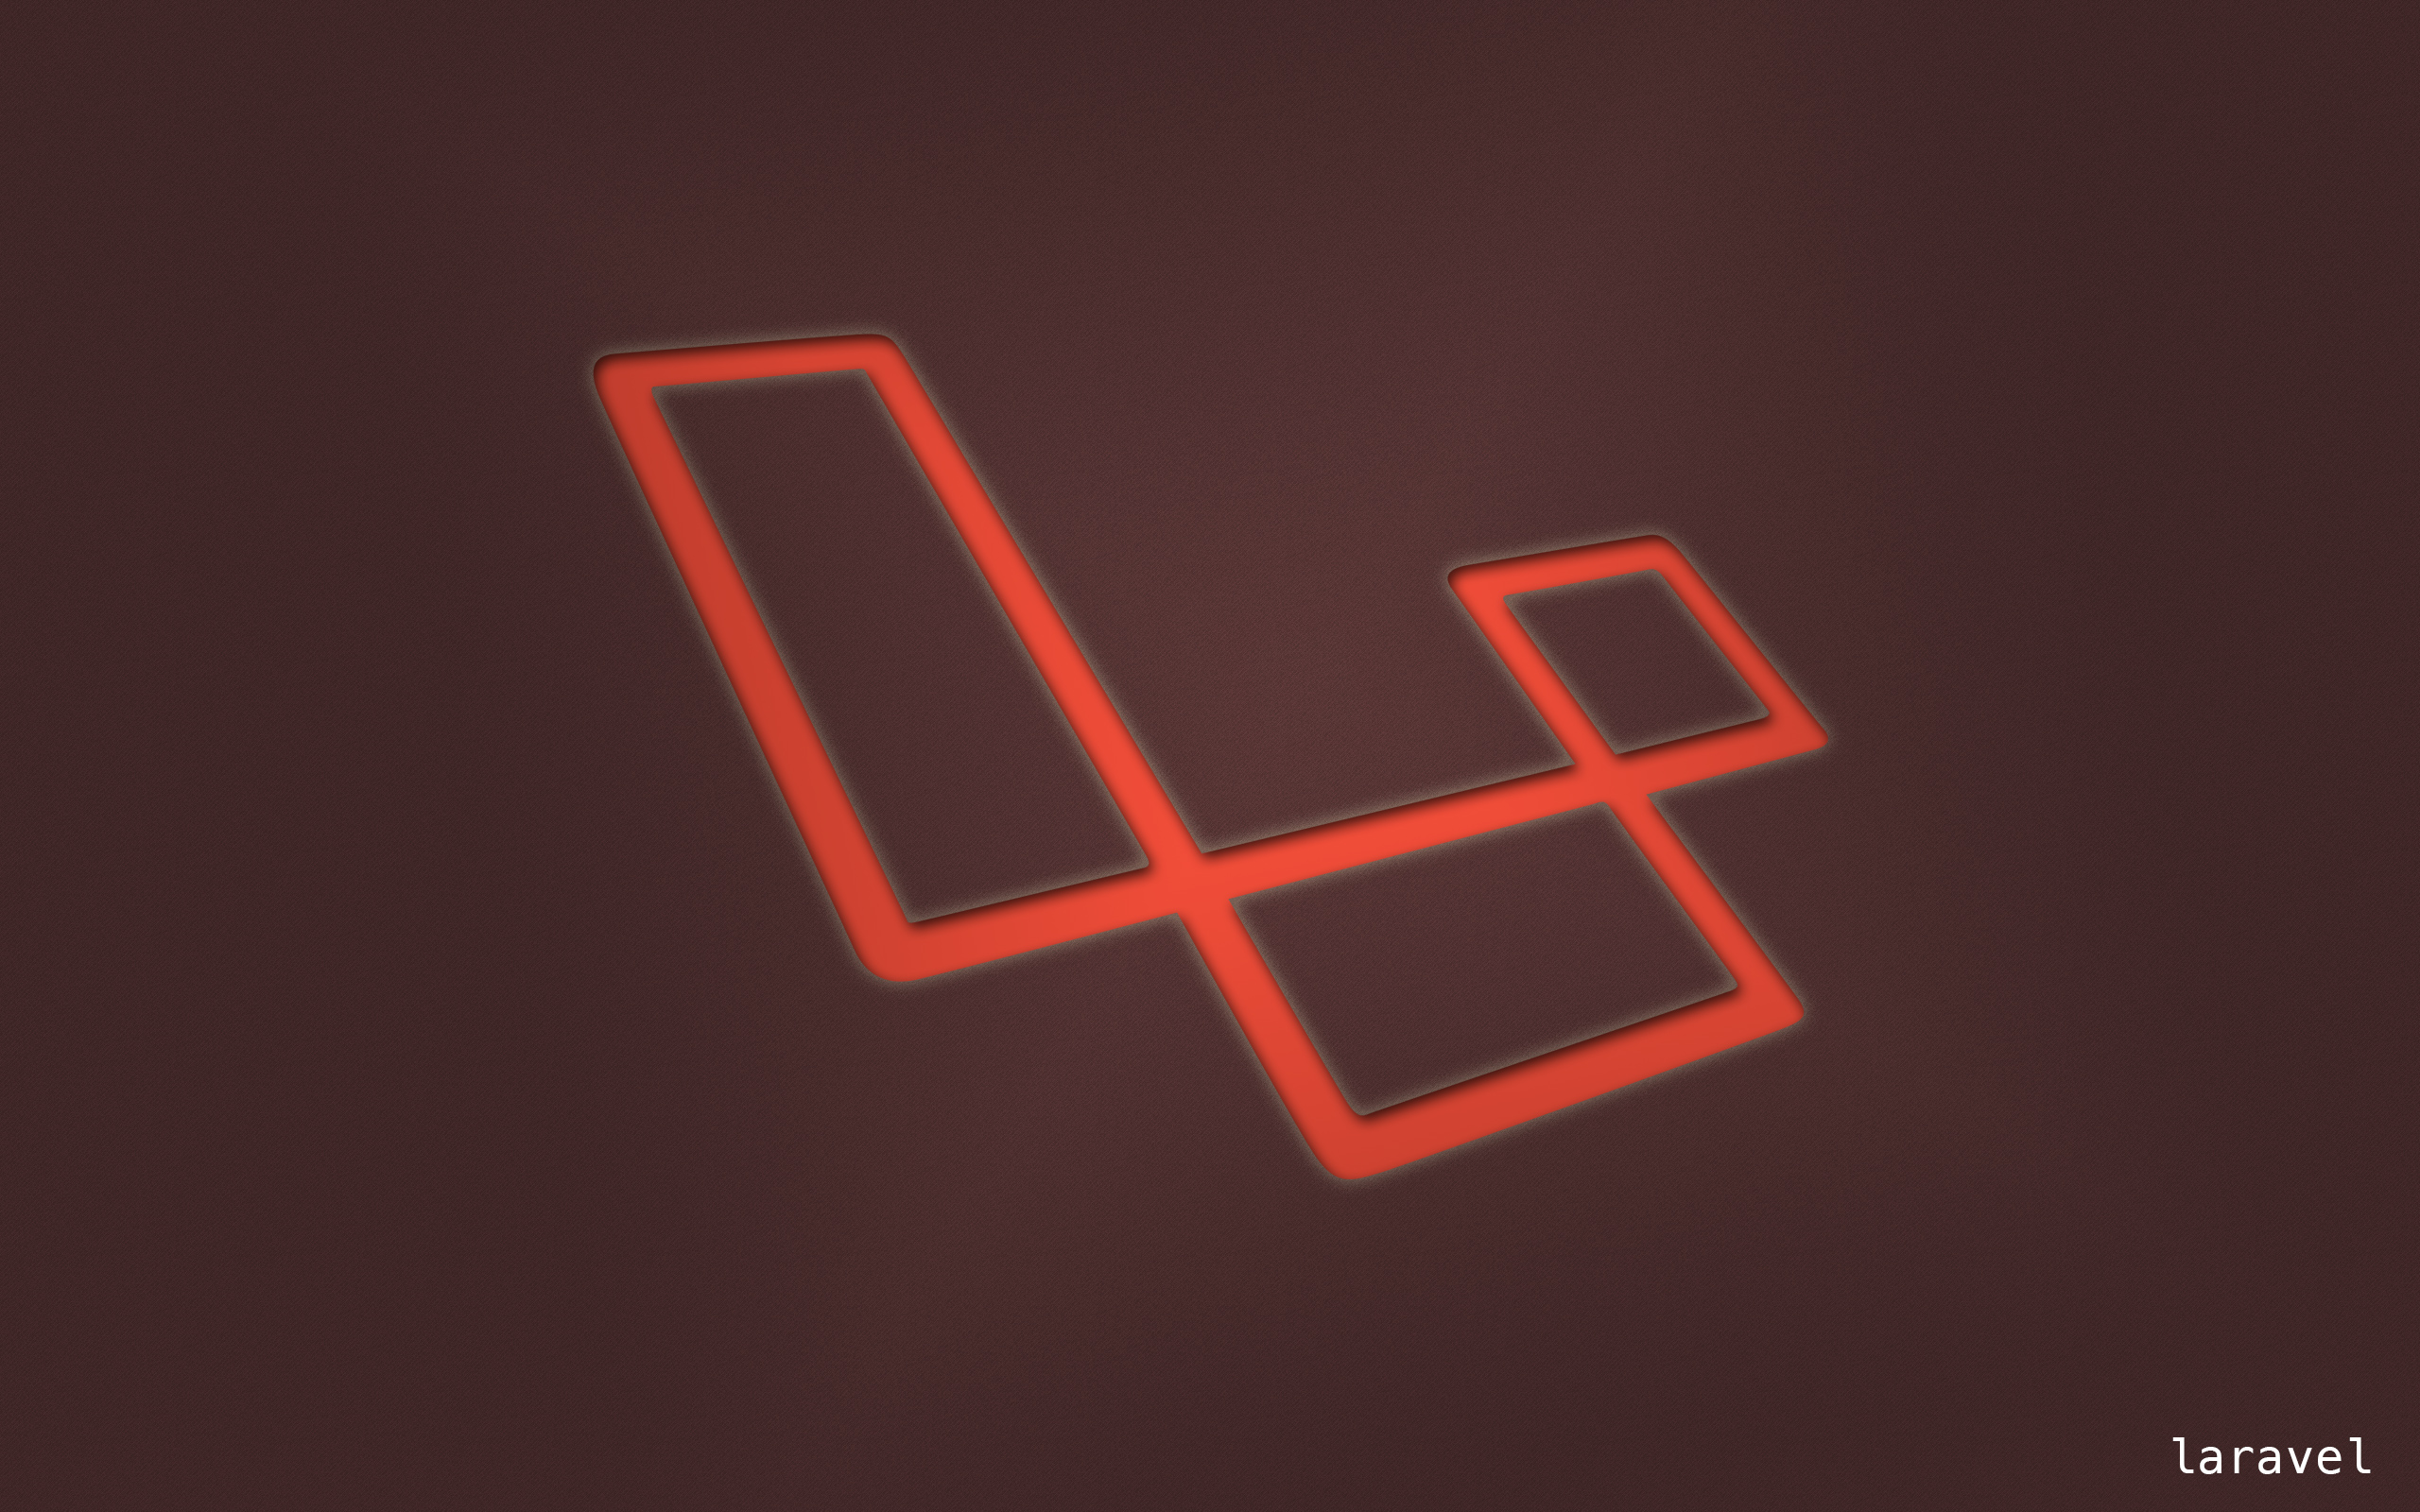 laravel_red_2560x1600